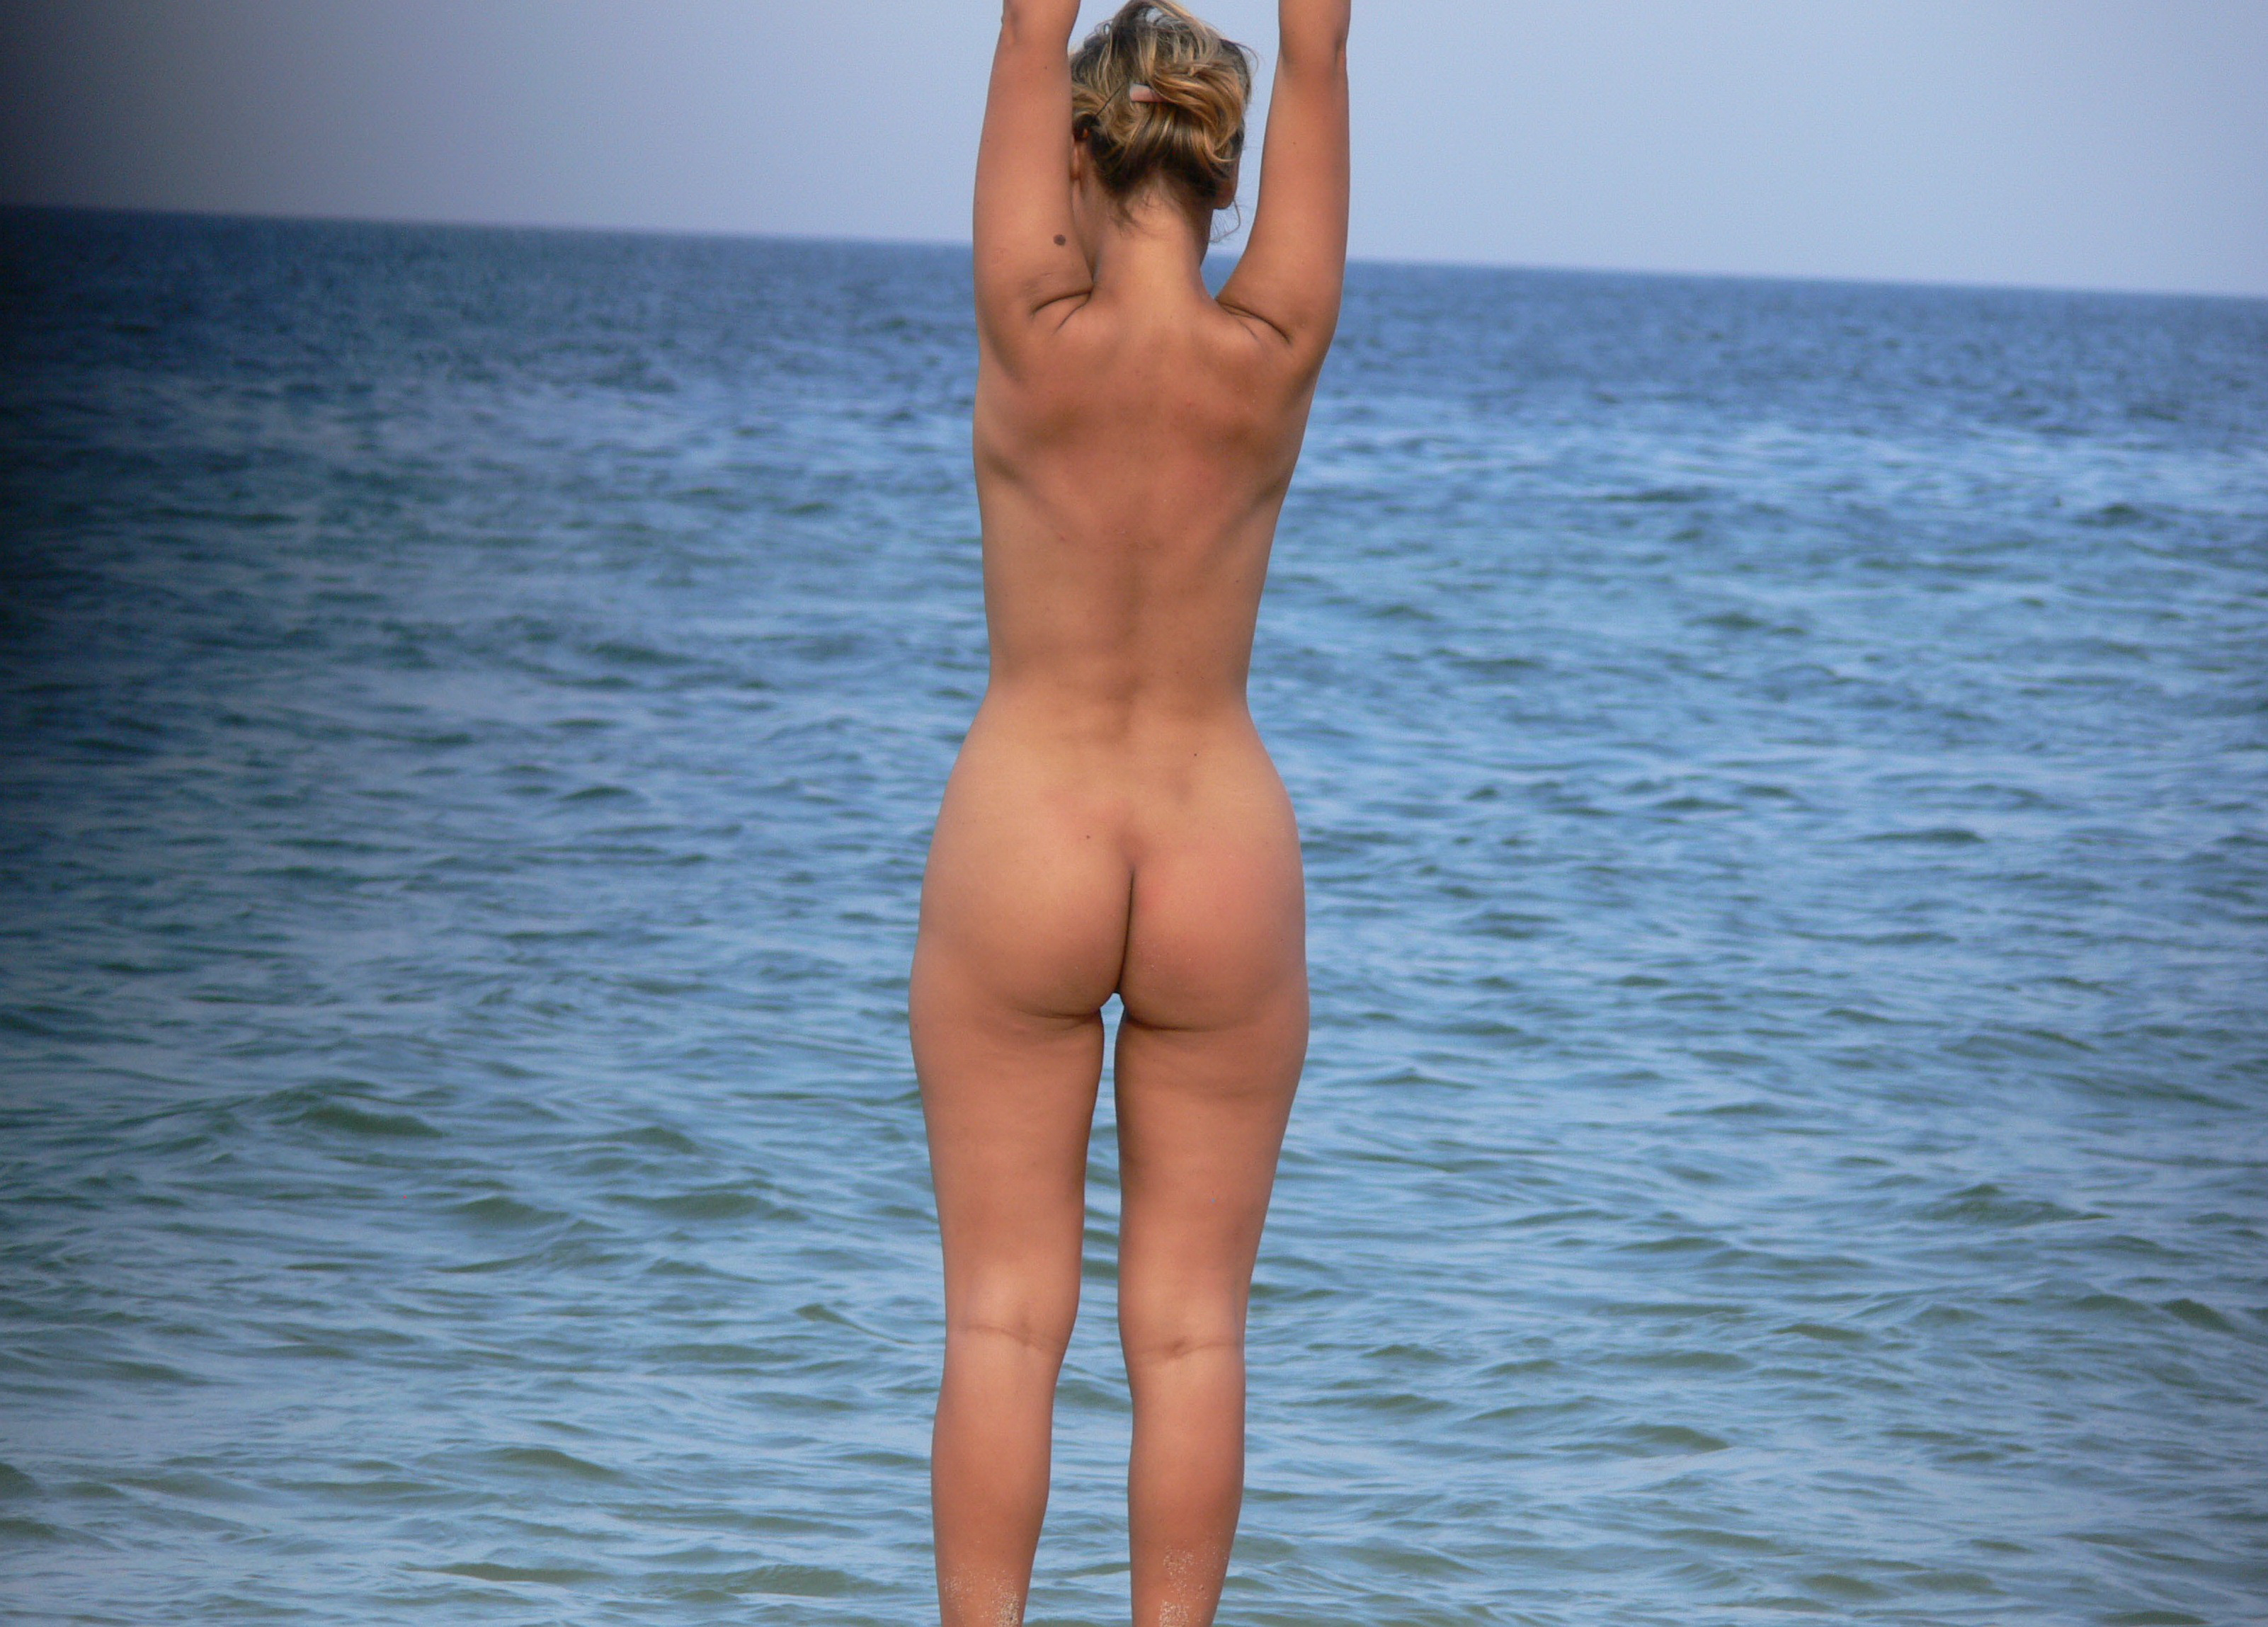 Teen nudists on beach